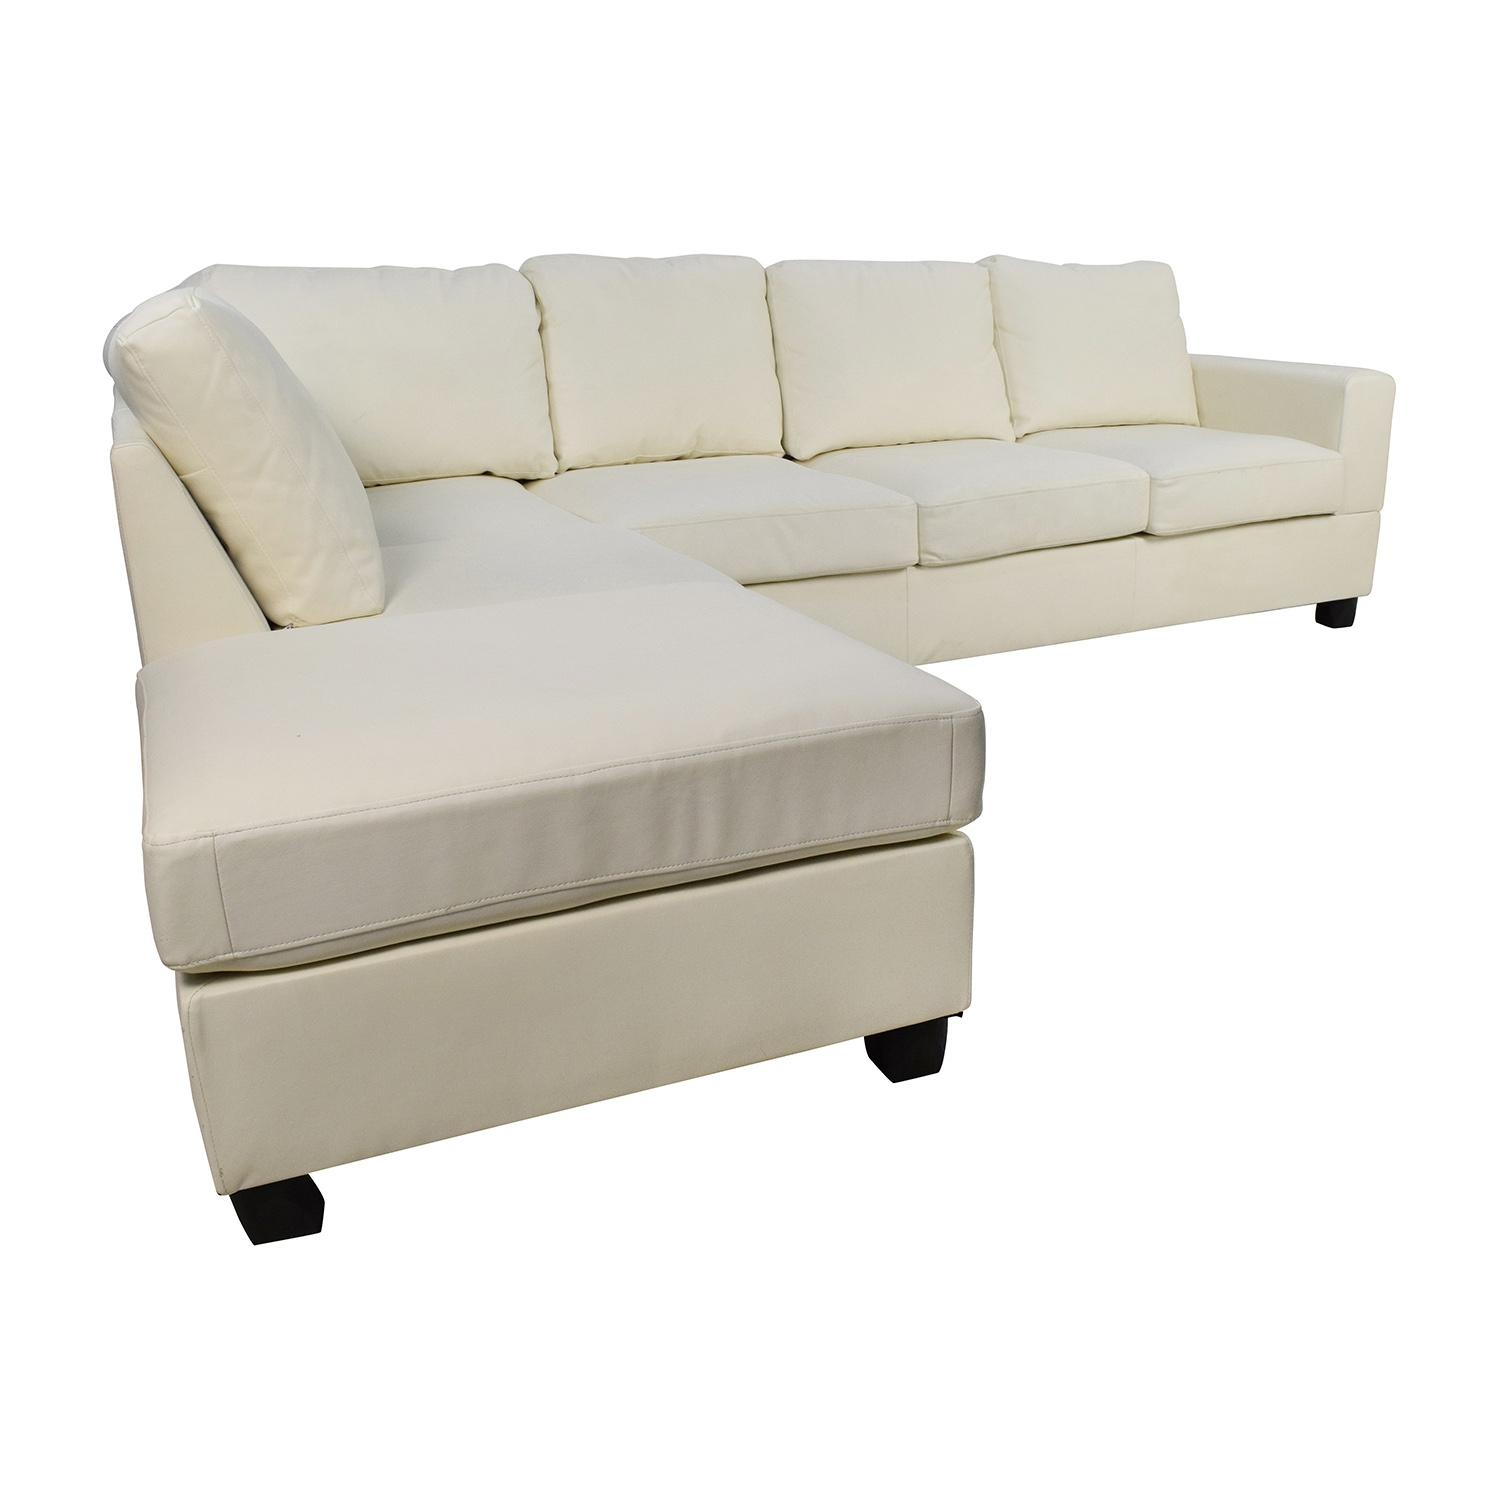 45% Off - L-Shaped White Leather Sectional / Sofas with regard to Used Sectionals